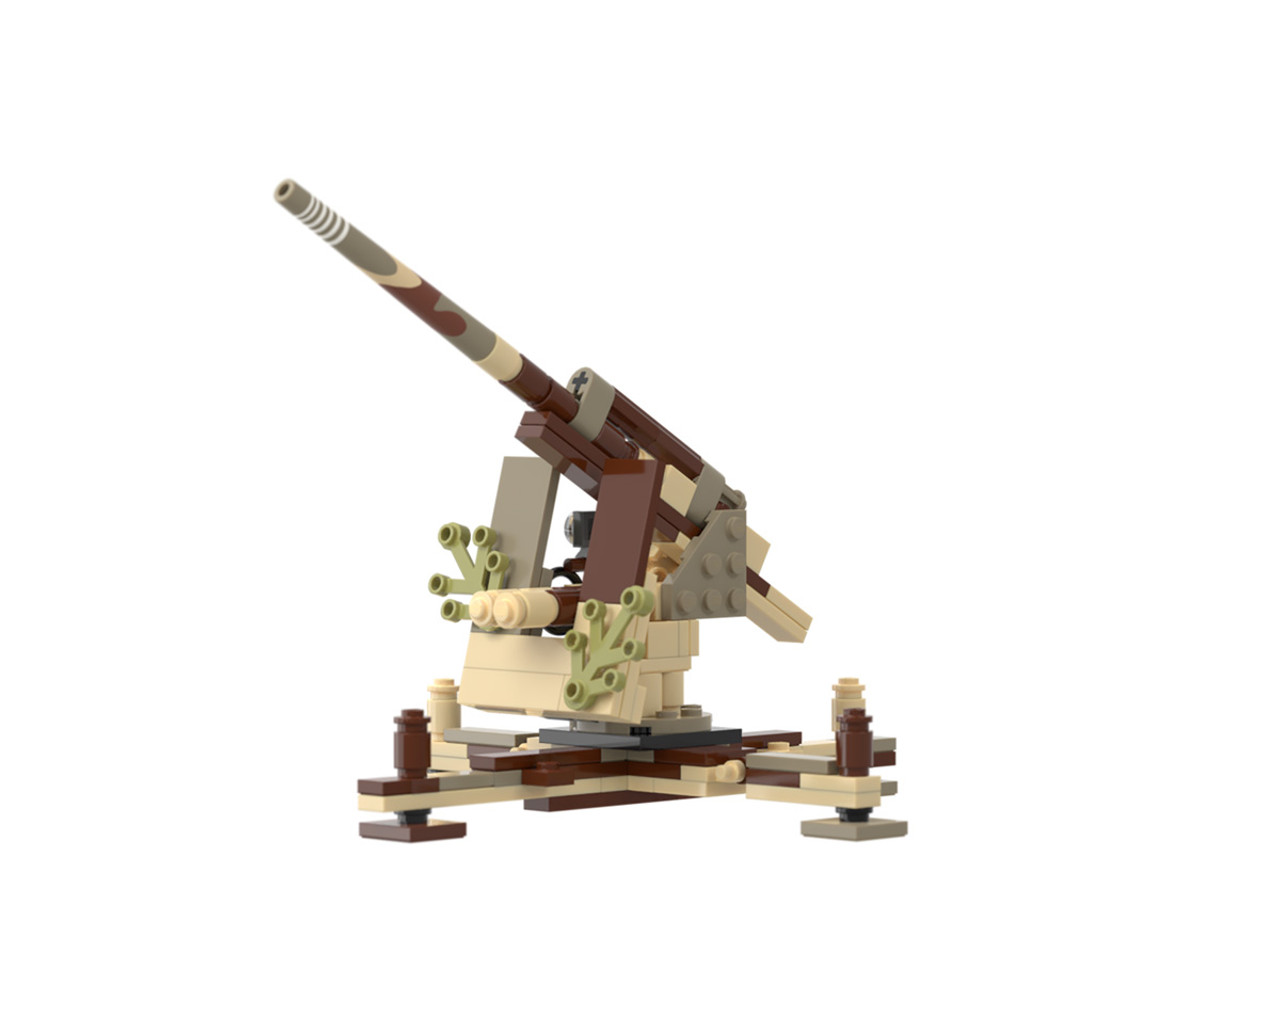 8.8cm Flak 36 - Anti-Aircraft Anti-Tank Gun